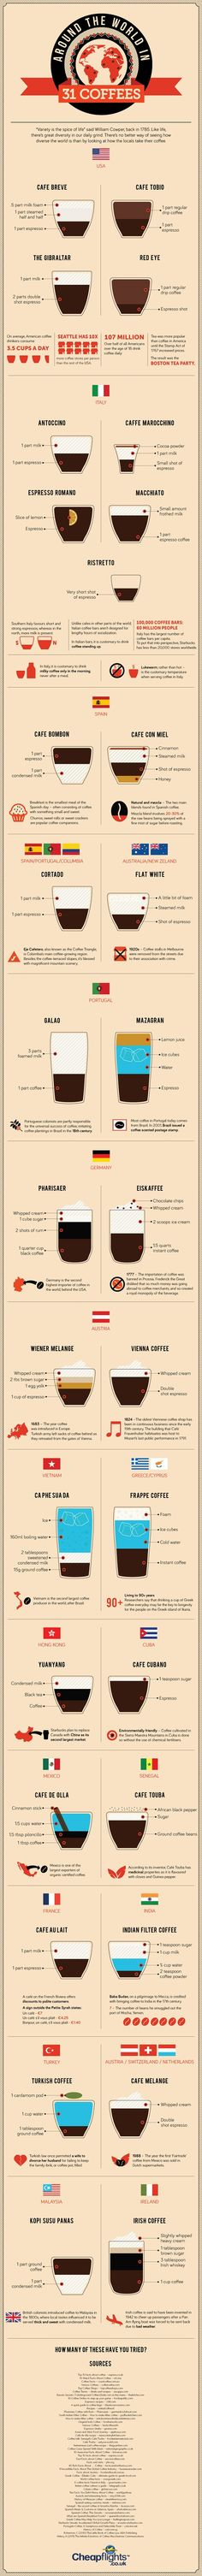 Around the World in 31 Coffees